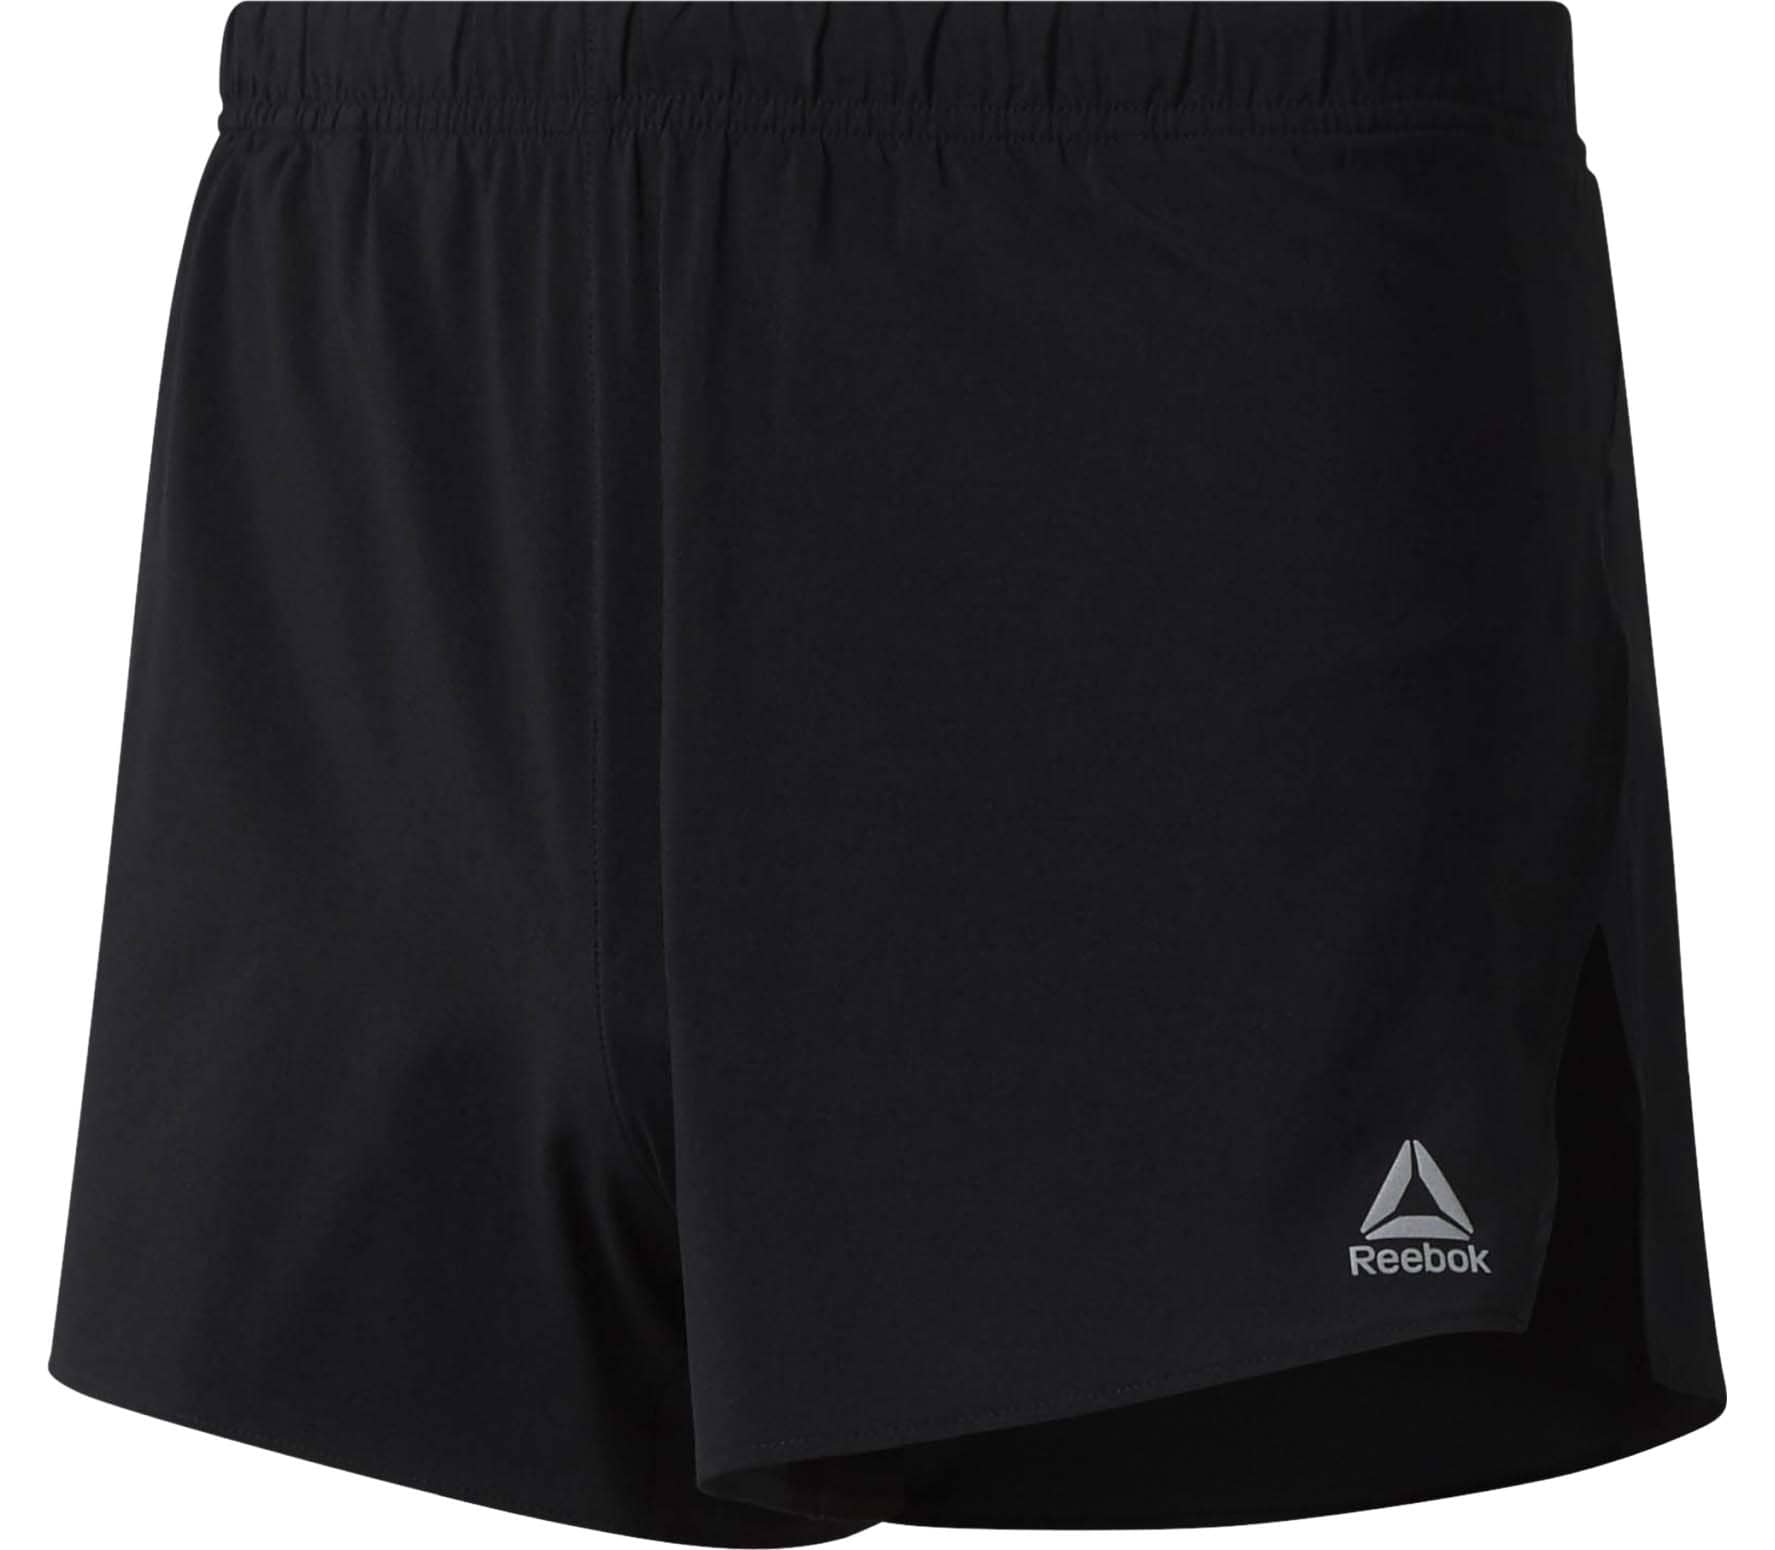 Boston Track Club 3 Inch Herren Laufshorts